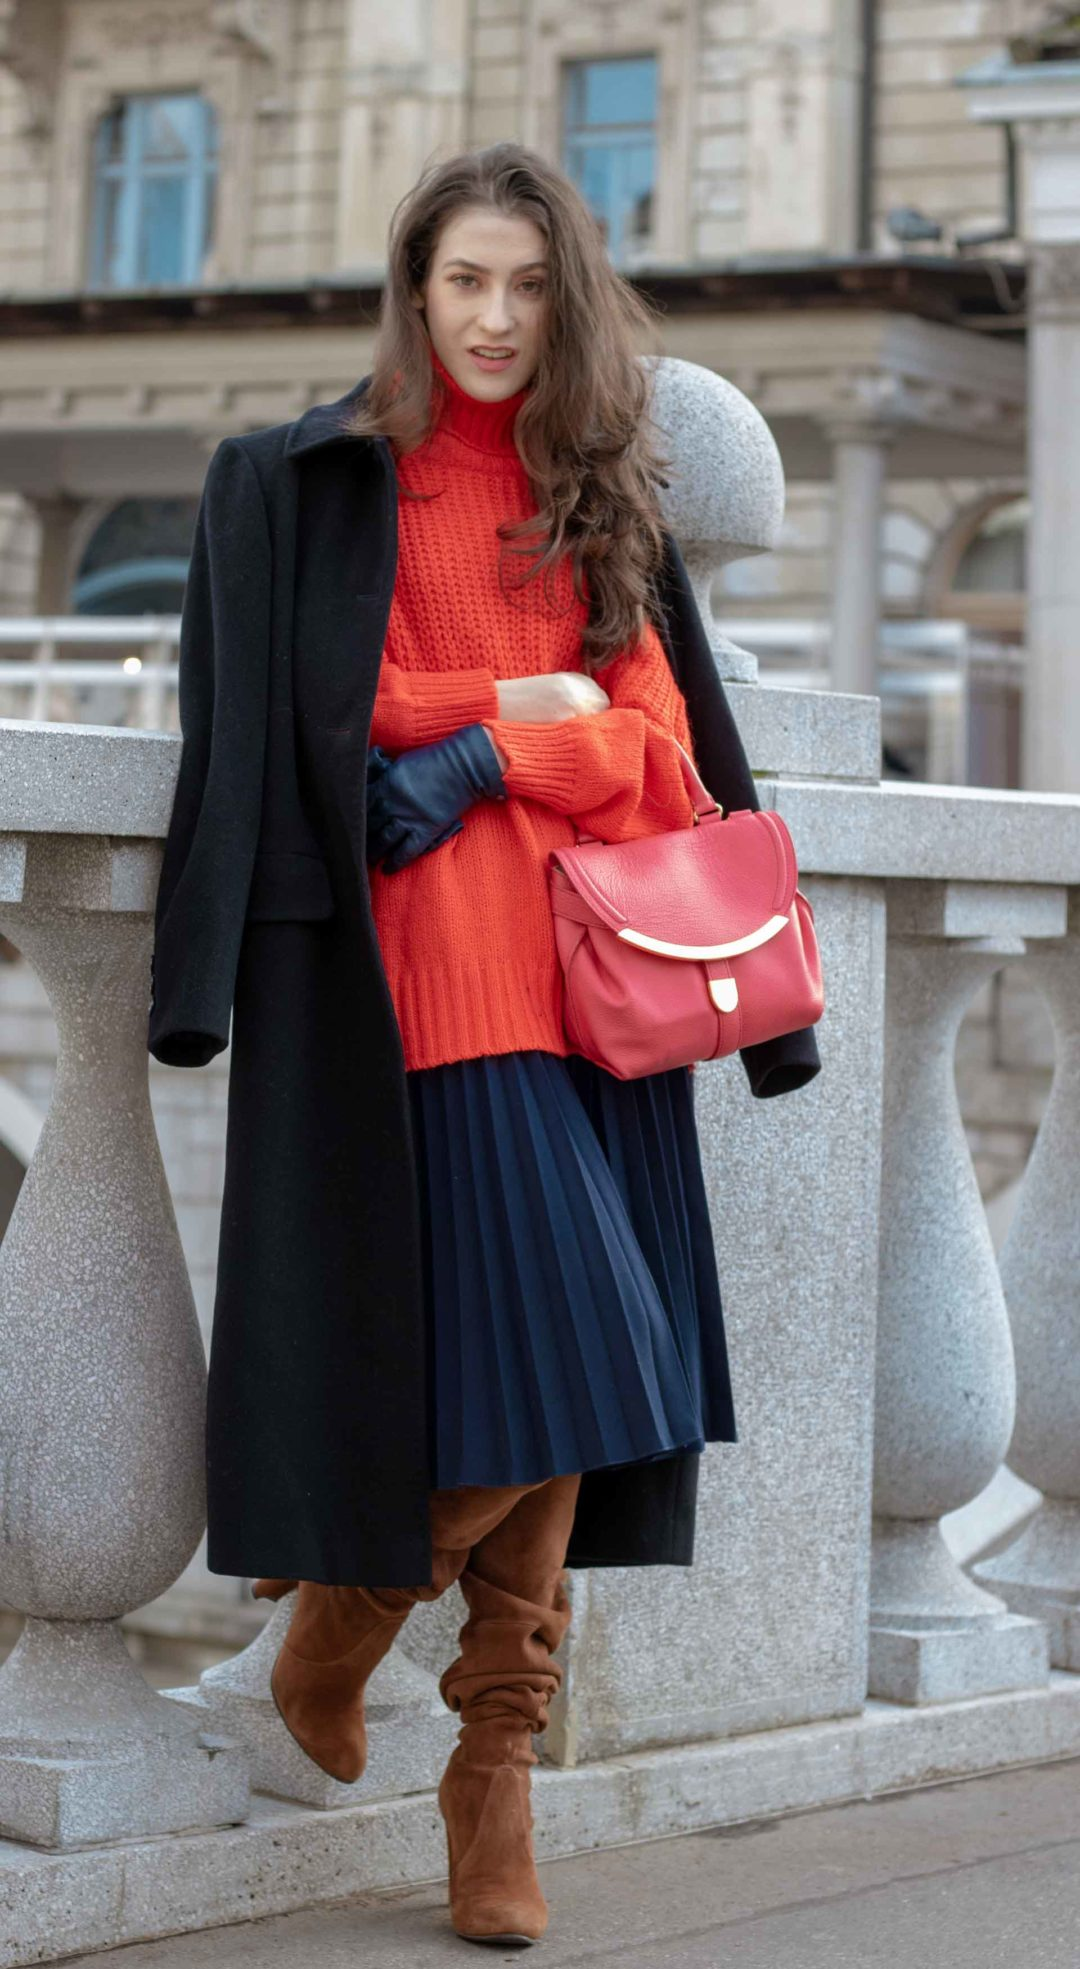 2a3c55b1a509 Beautiful Slovenian Fashion Blogger Veronika Lipar of Brunette from Wall  Street wearing red oversize contrasting sweater